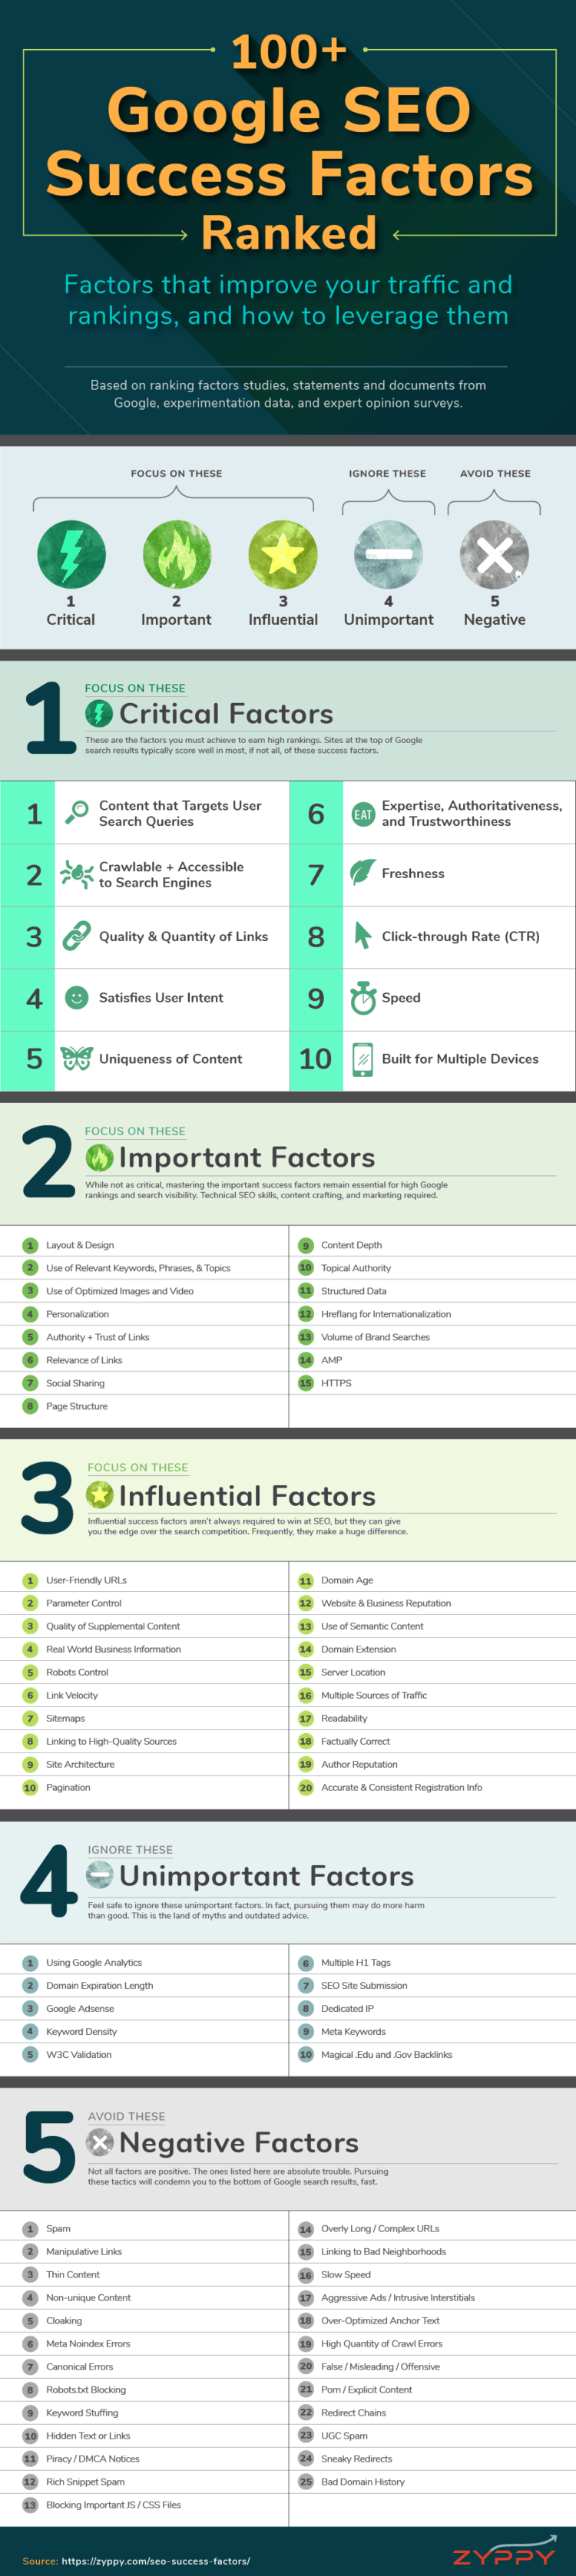 seo_success_factors_infographic